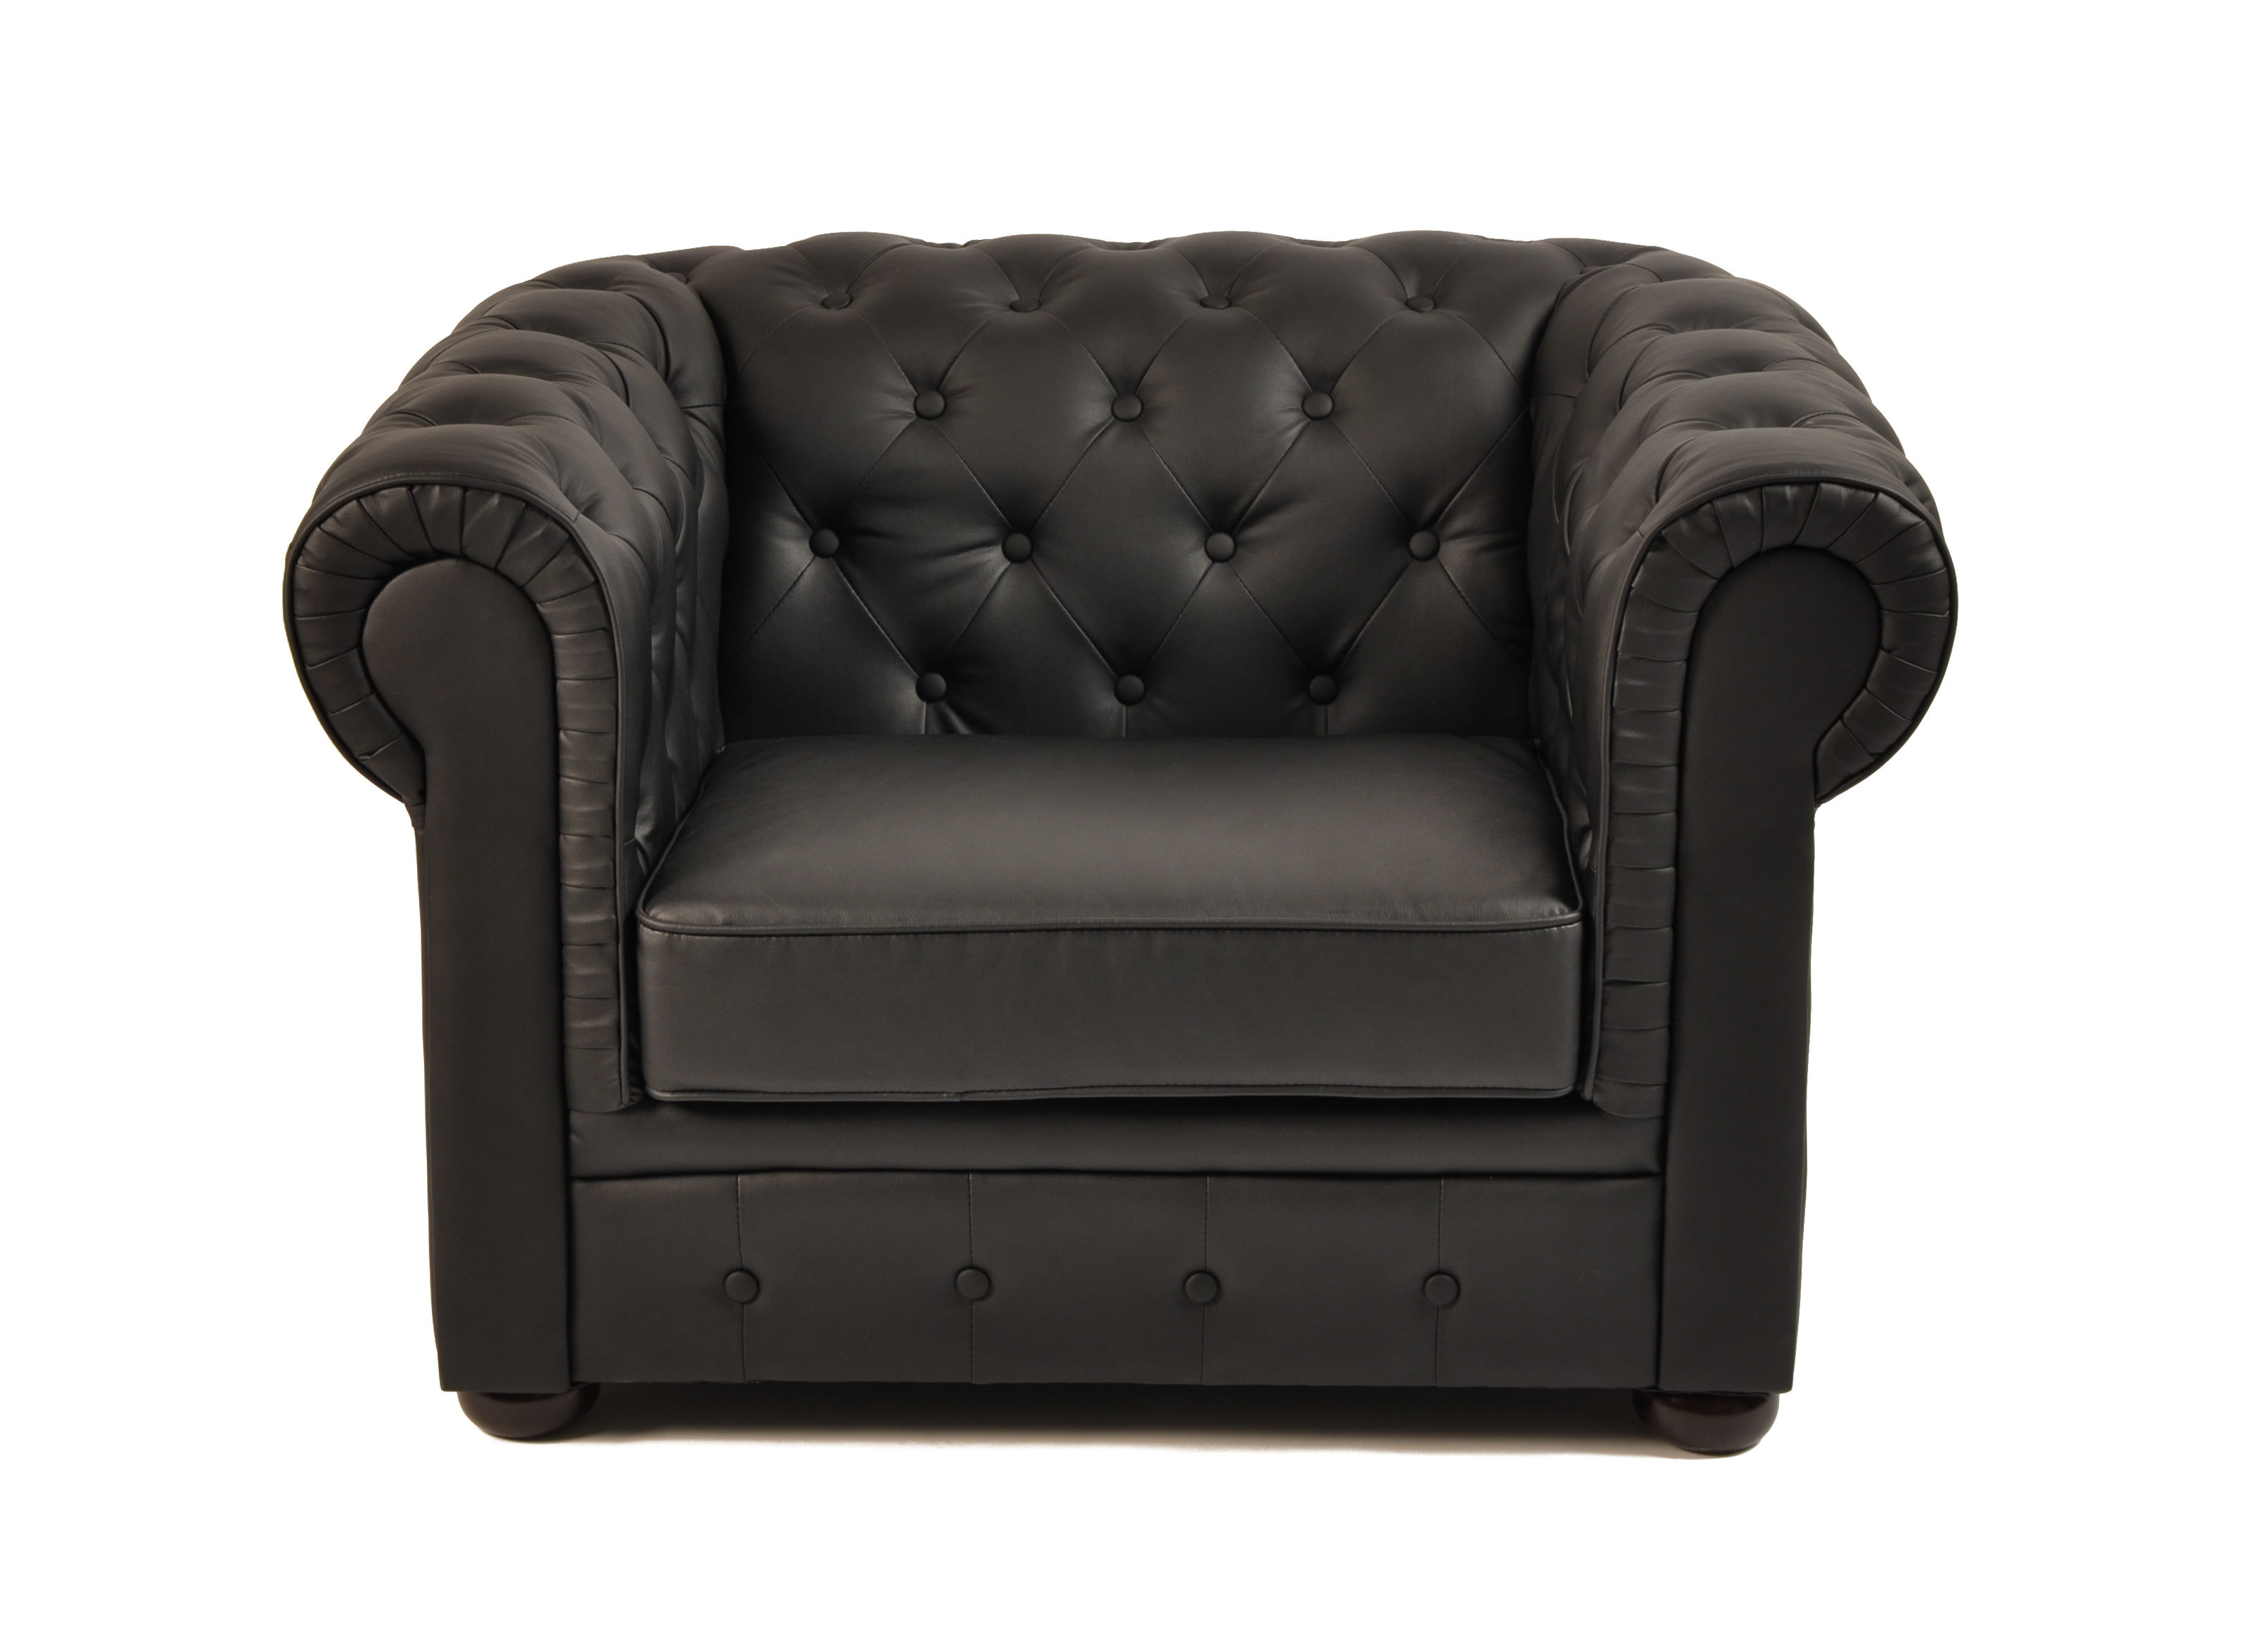 Sill N Chesterfield Color Negro Miliboo